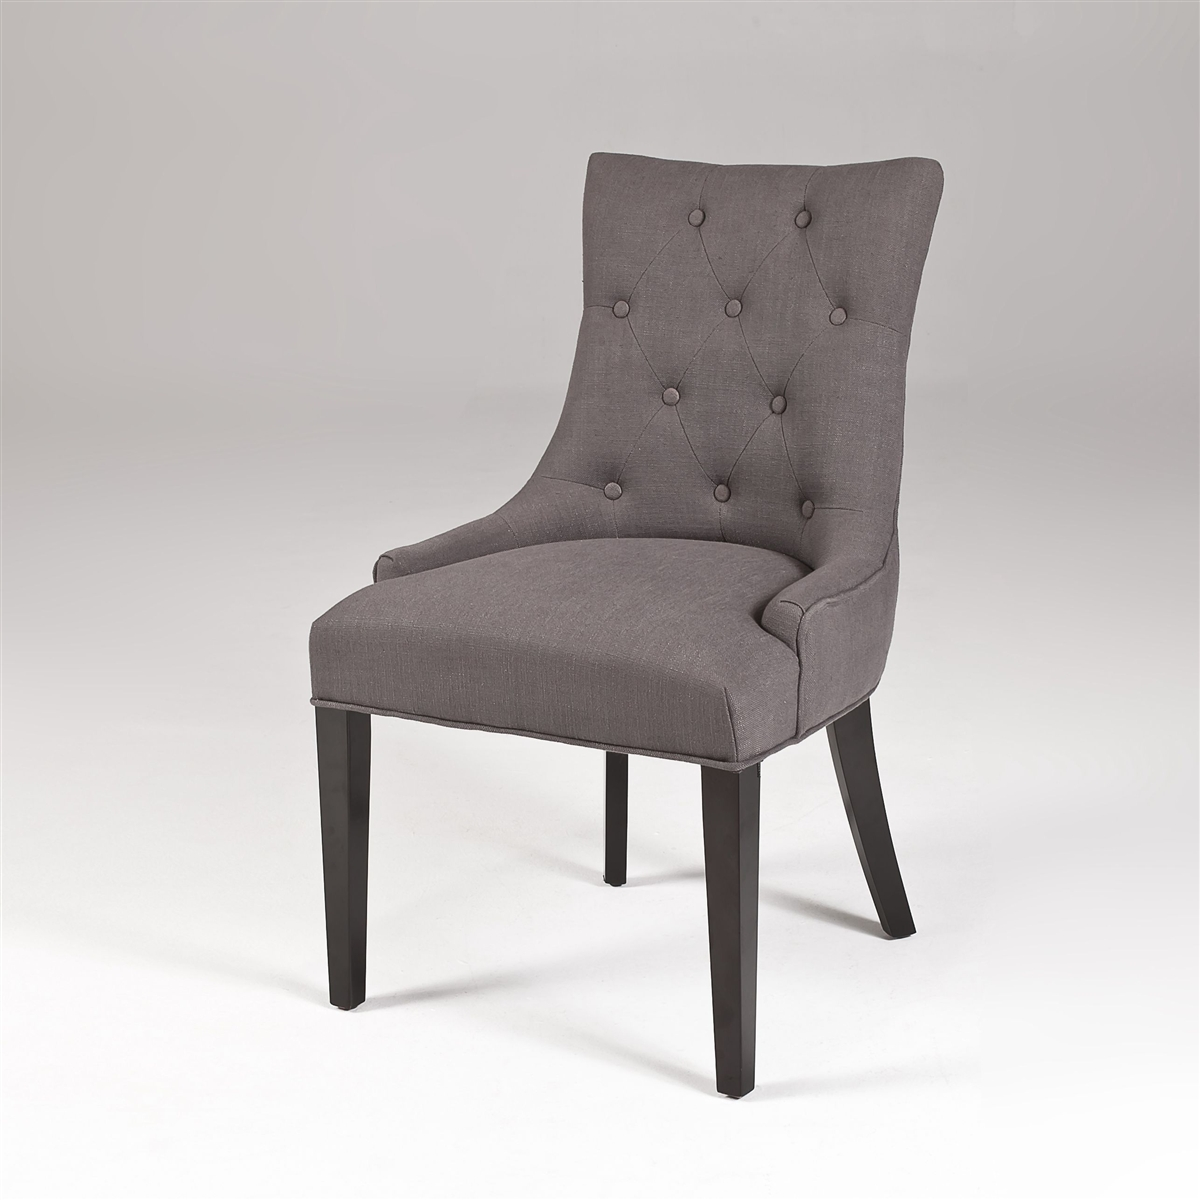 Gray linen dining chairs modern dining chairs gray for Upholstered linen dining chairs